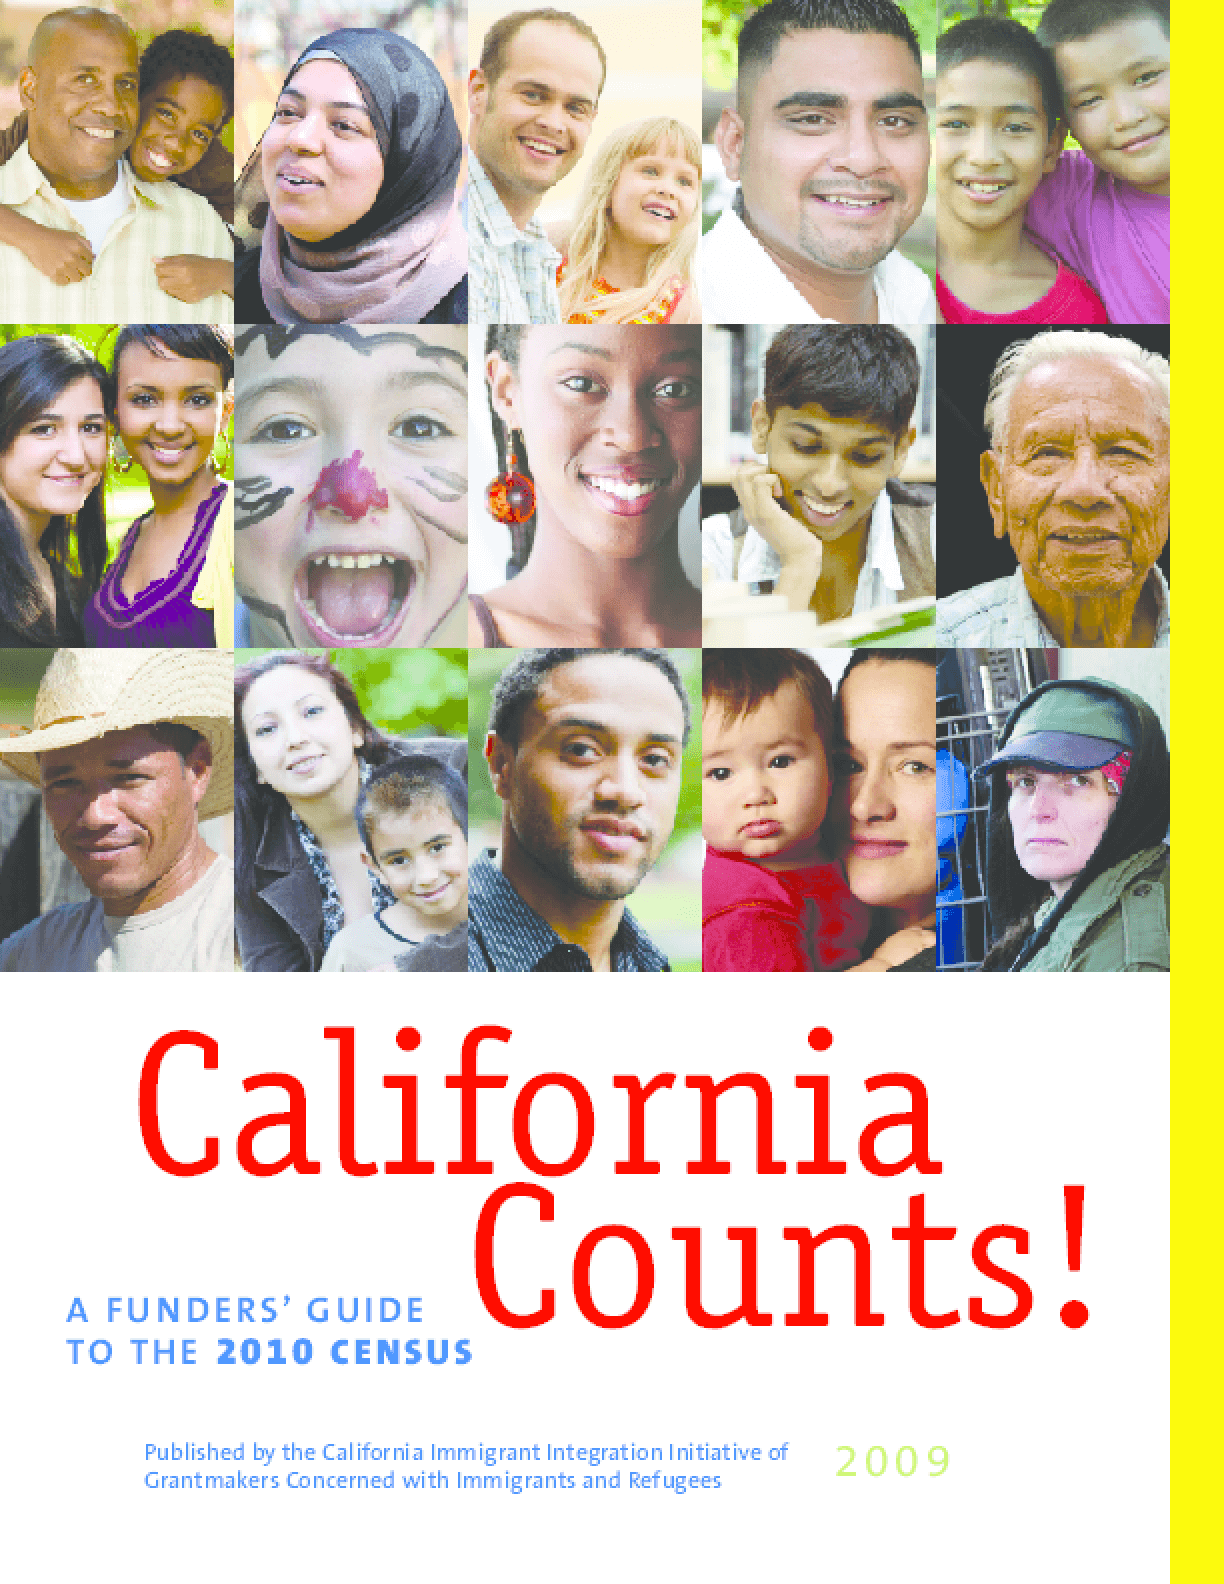 California Counts! A Funders' Guide to the 2010 Census